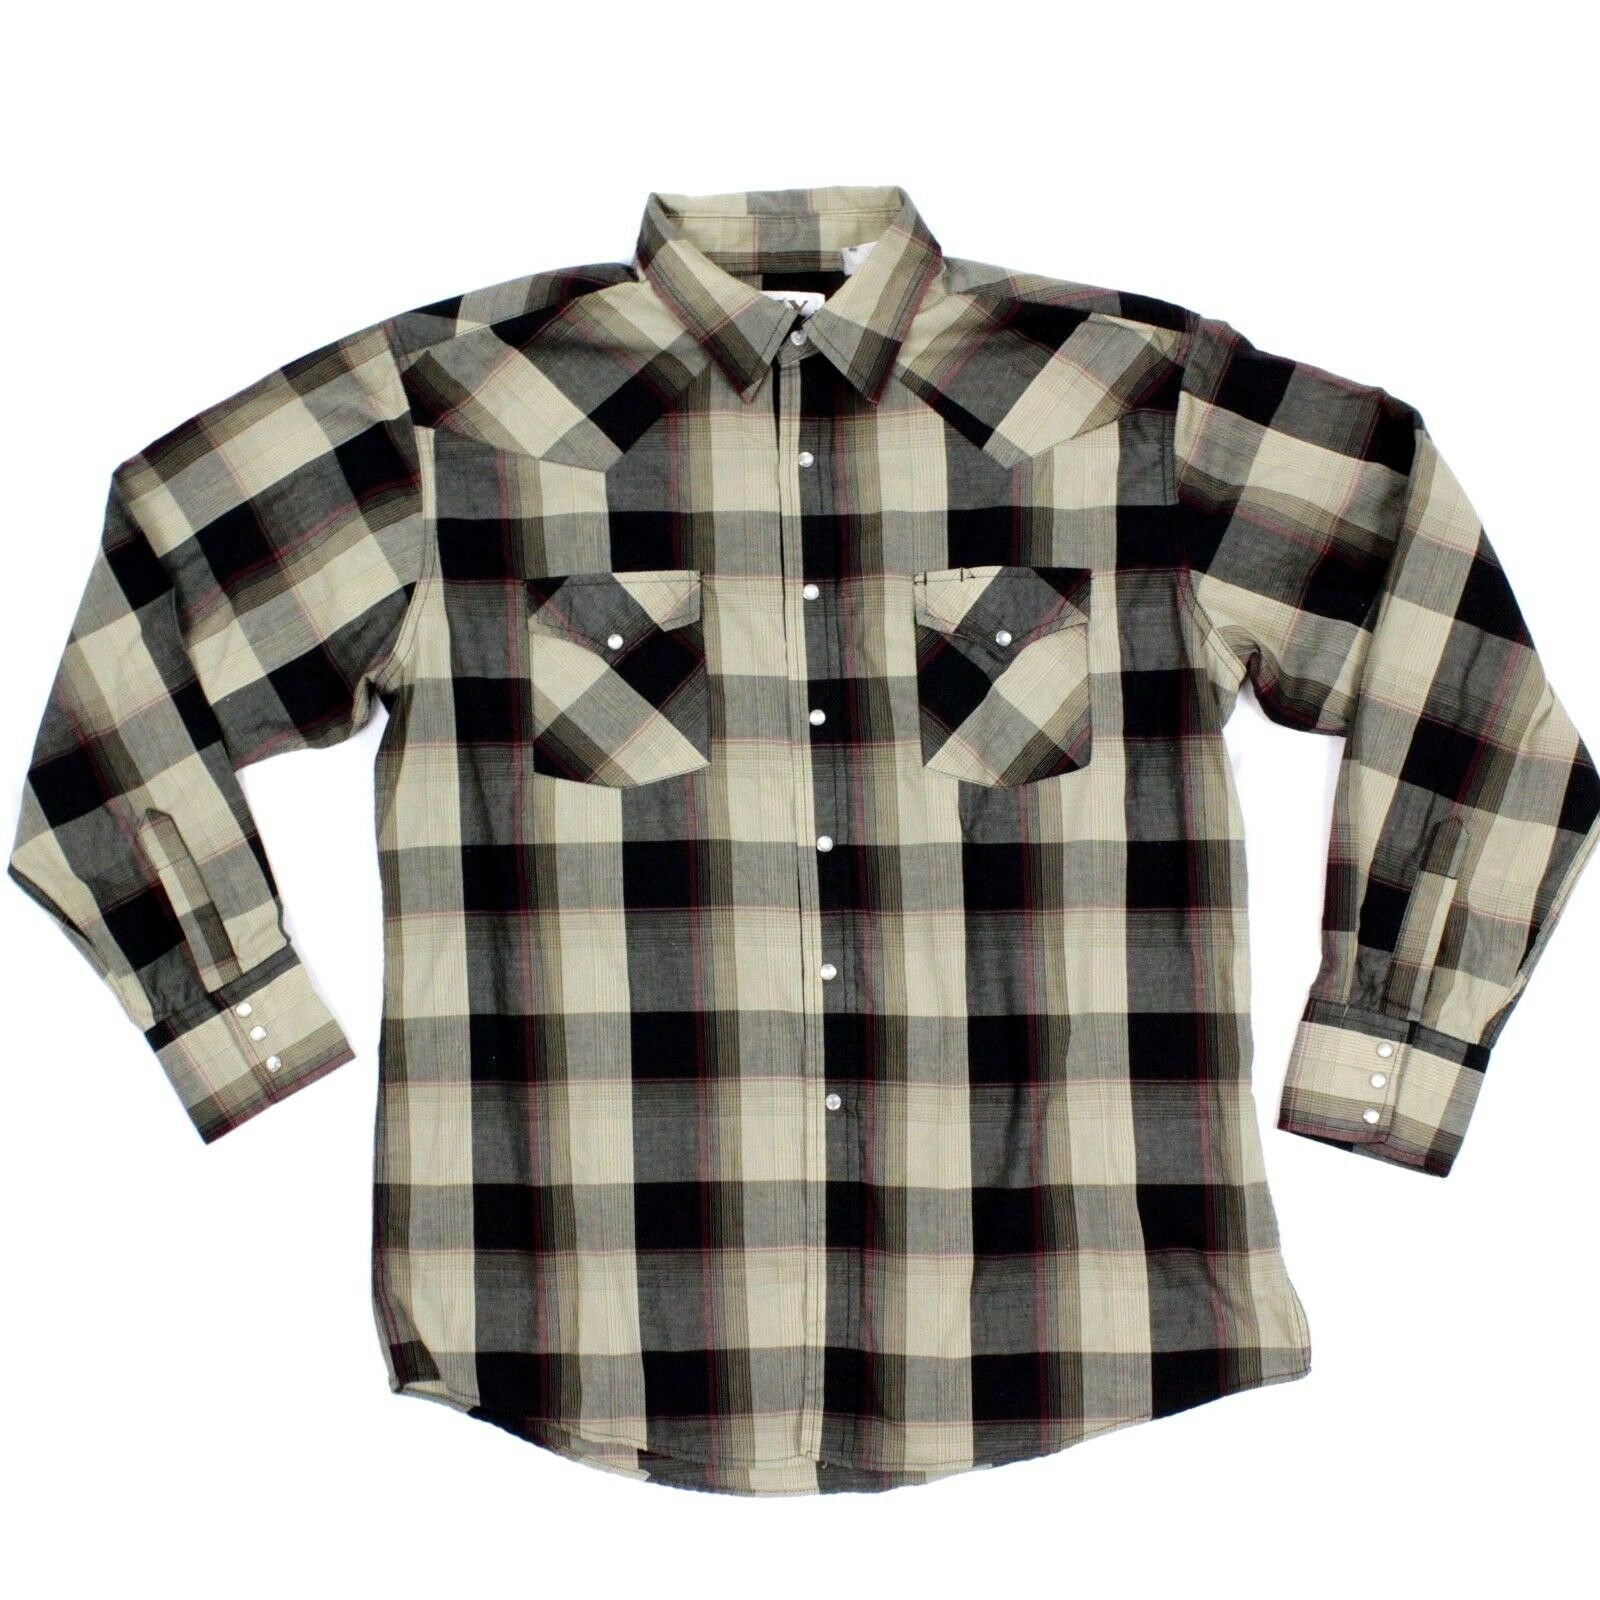 Vintage Ely Cattle Western Snap Button Shirt Plaid Longsleeve Embellished Cowboy